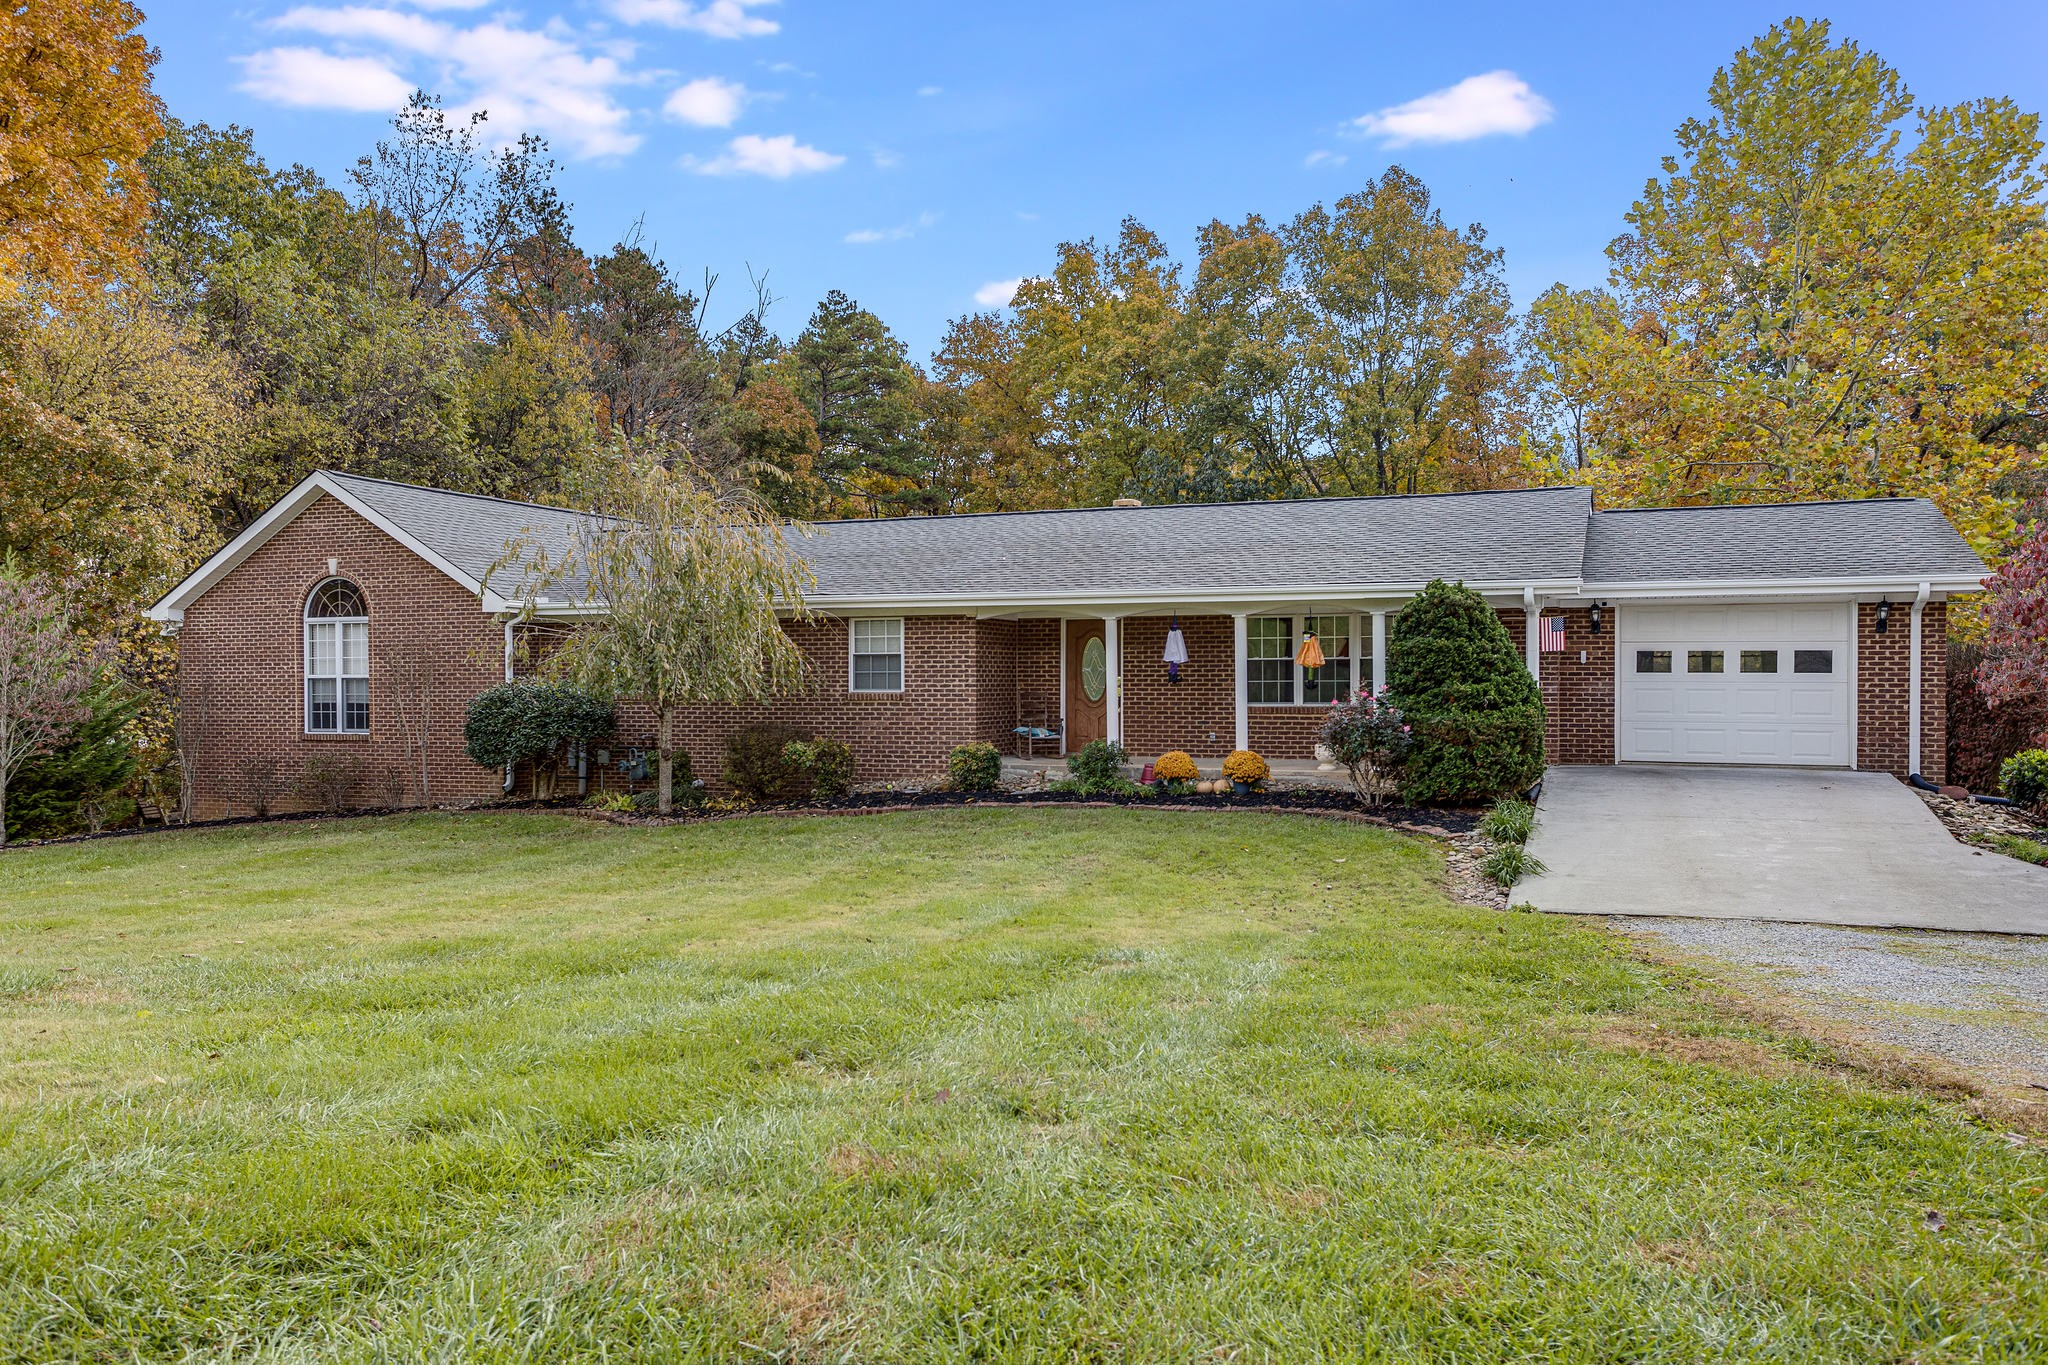 849 Isabell Dr, Dandridge, TN 37725 - Dandridge, TN real estate listing